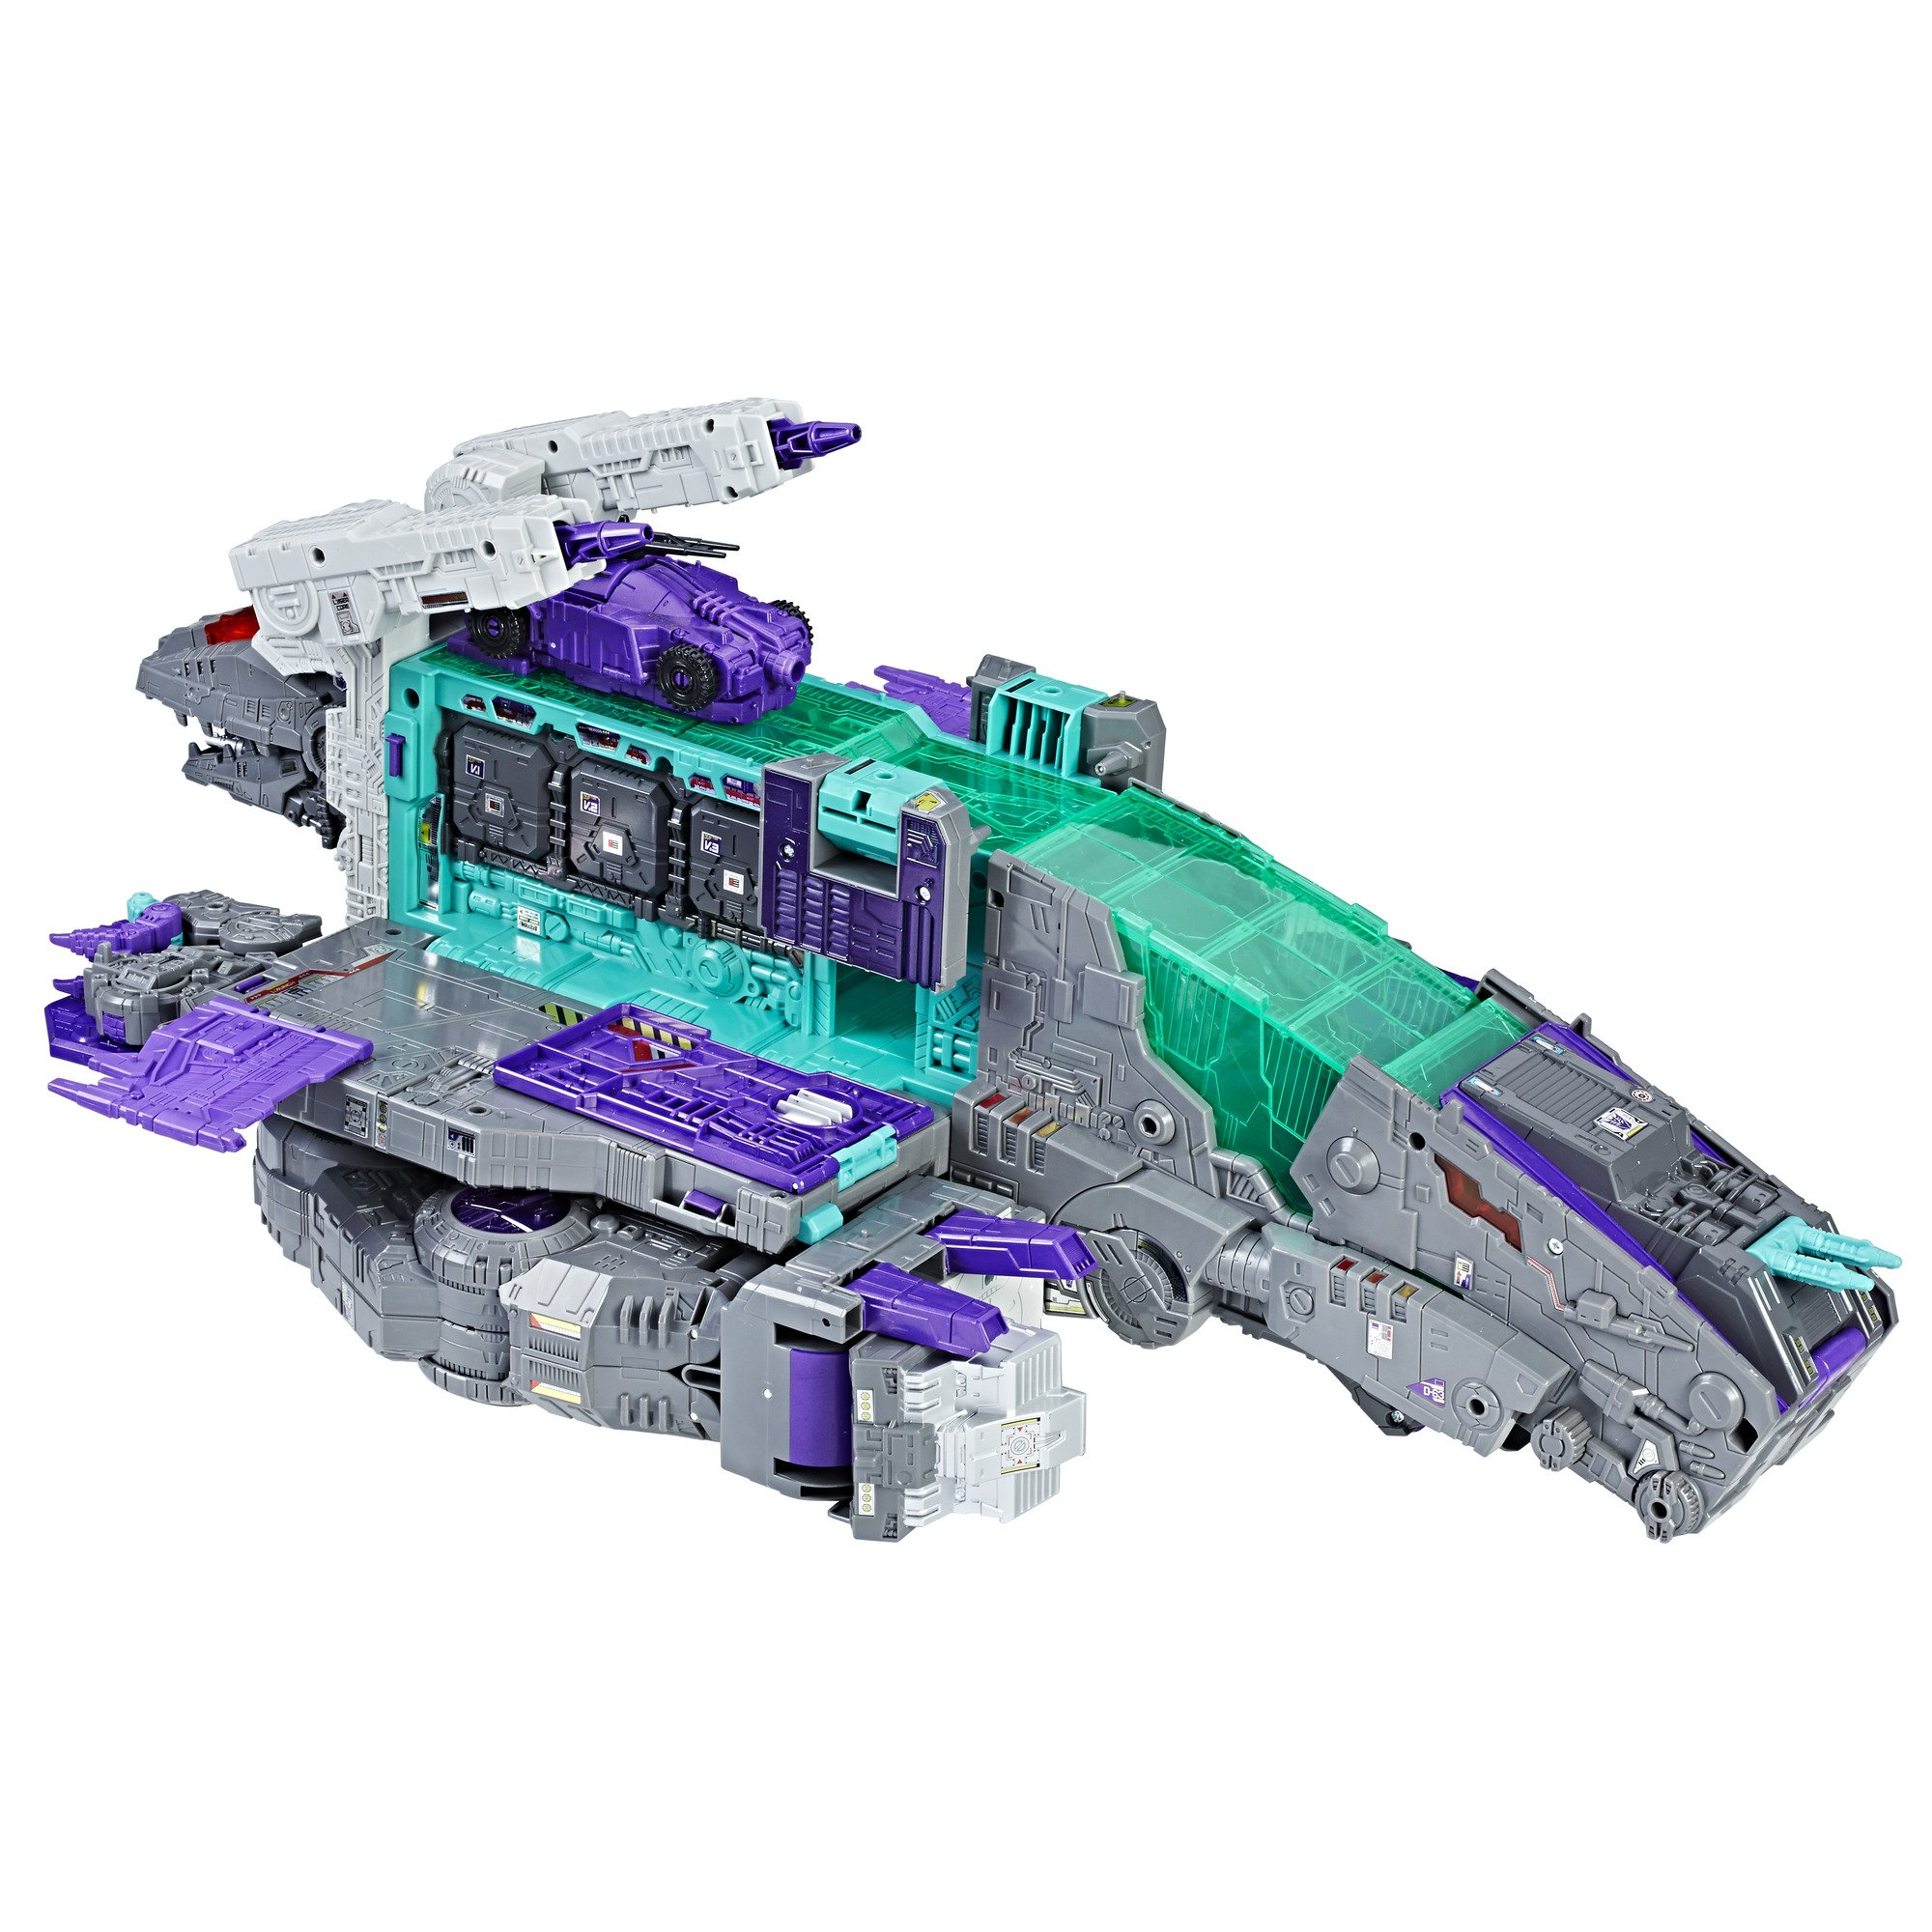 Transformers Generations Titans Return Titan Class Trypticon by Transformers (Image #3)